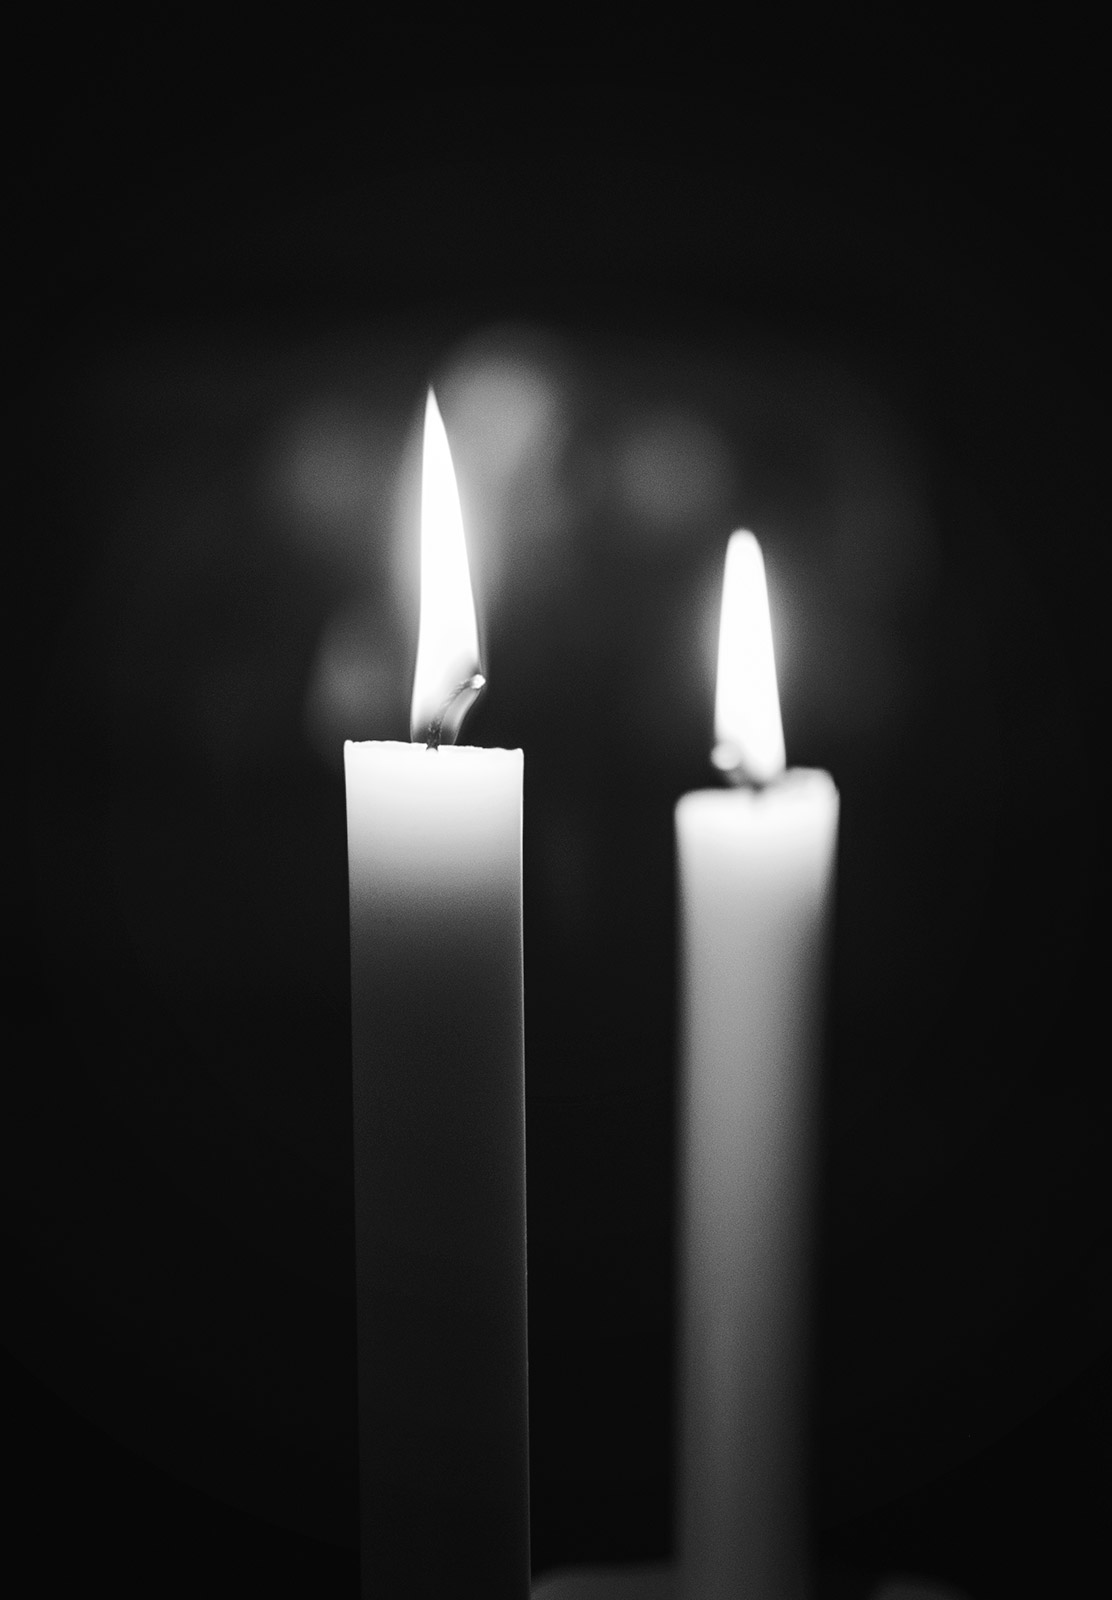 Candle flames in the dark